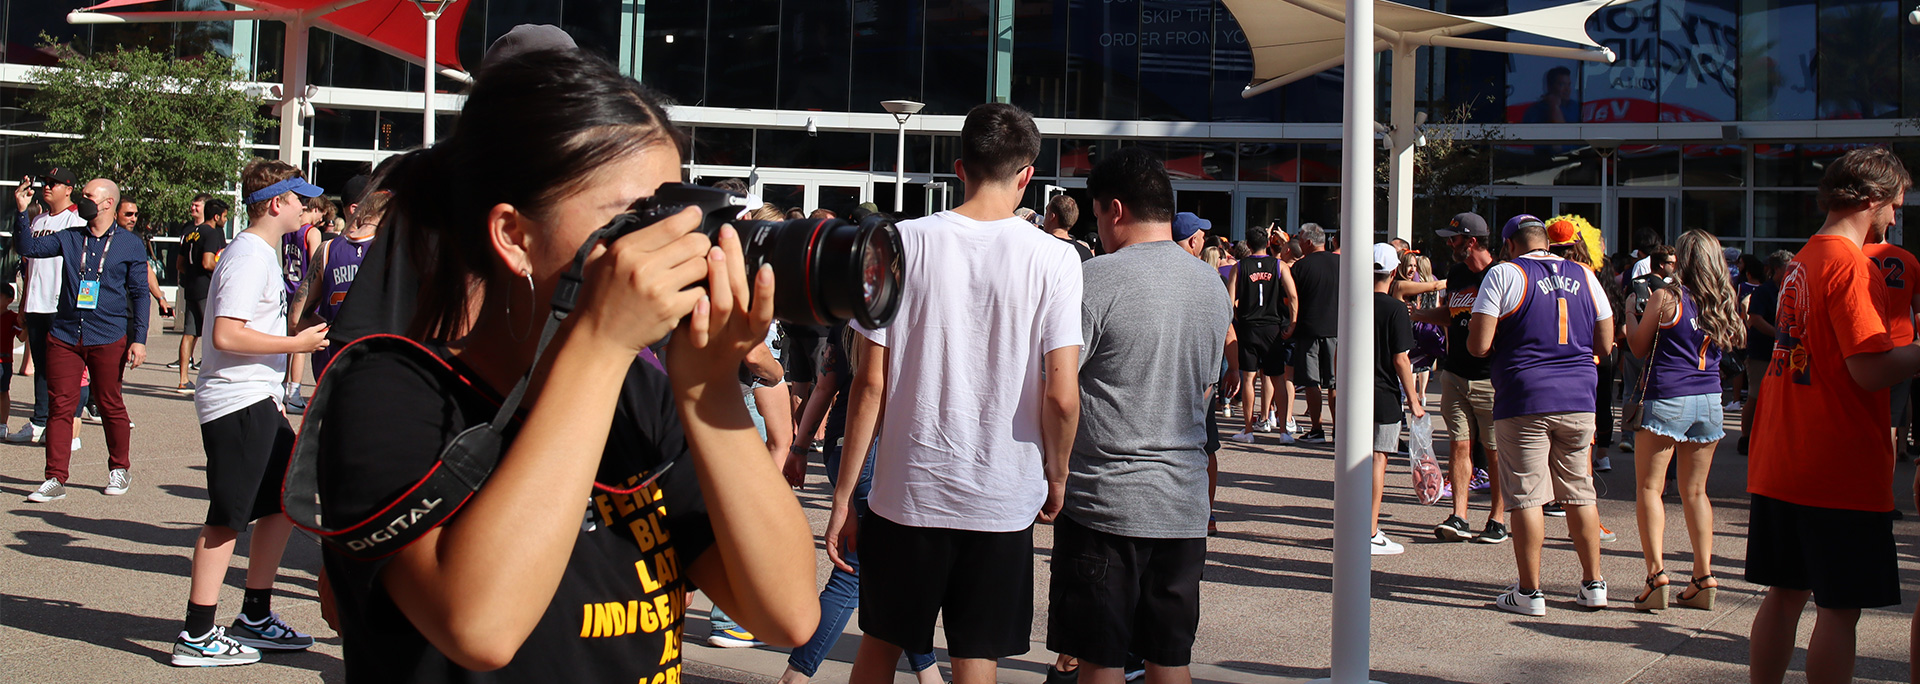 A student photographer takes photos at the NBA FInals.